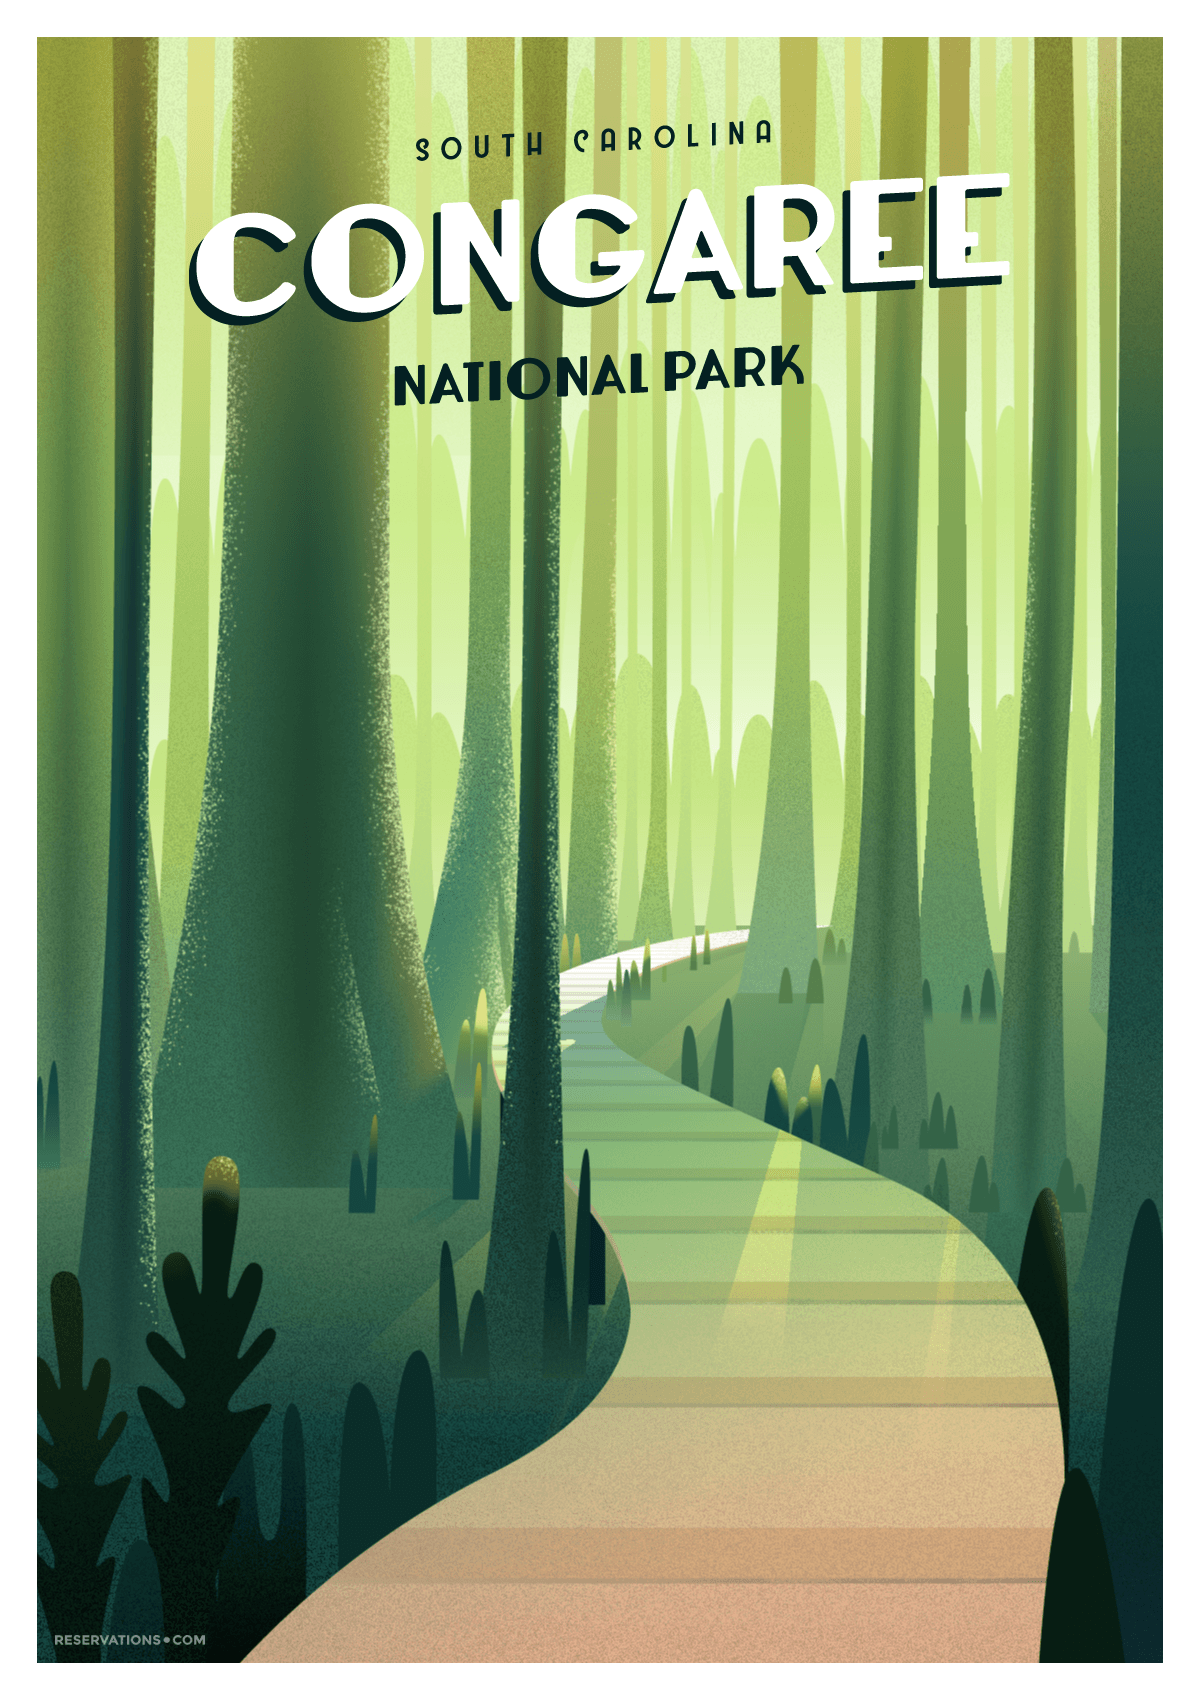 cogaree national forest poster